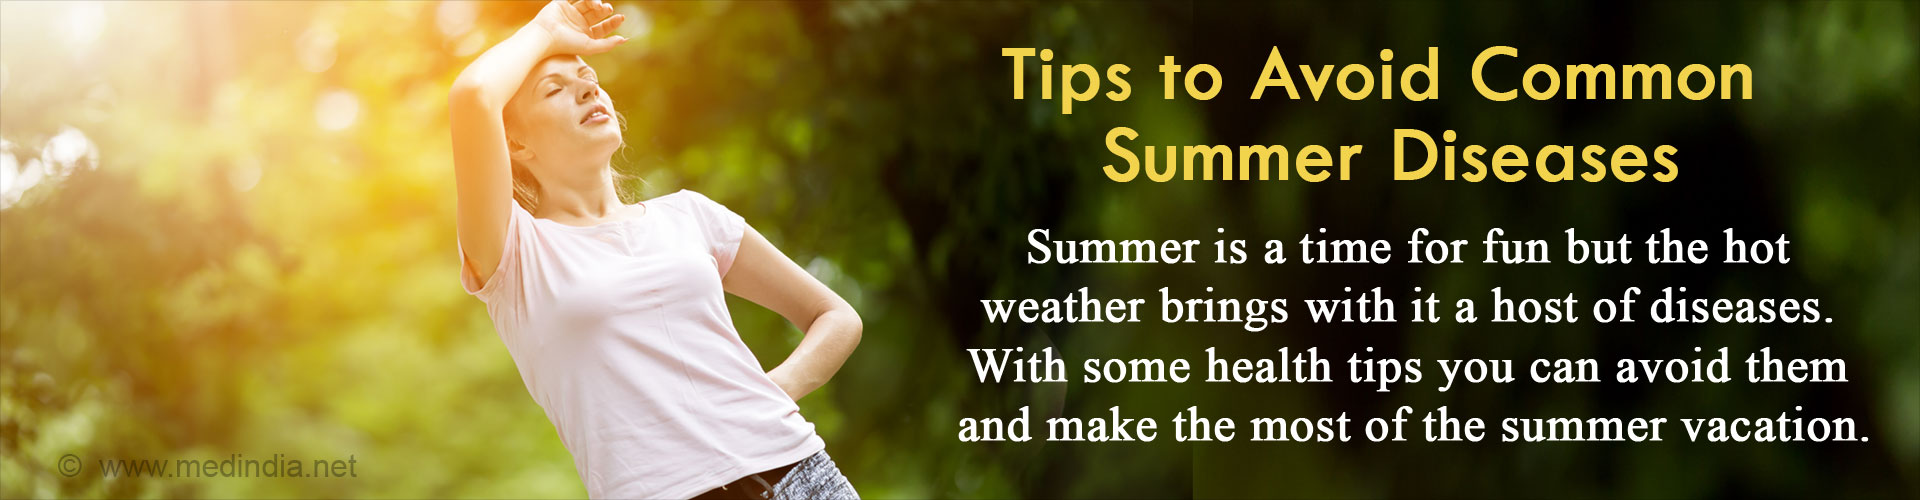 Tips to avoid common summer diseases: Summer is a time of fun, but the hot waether brings with it a host of diseases. With some health tips, you can avoid them and make the most of the summer vacation